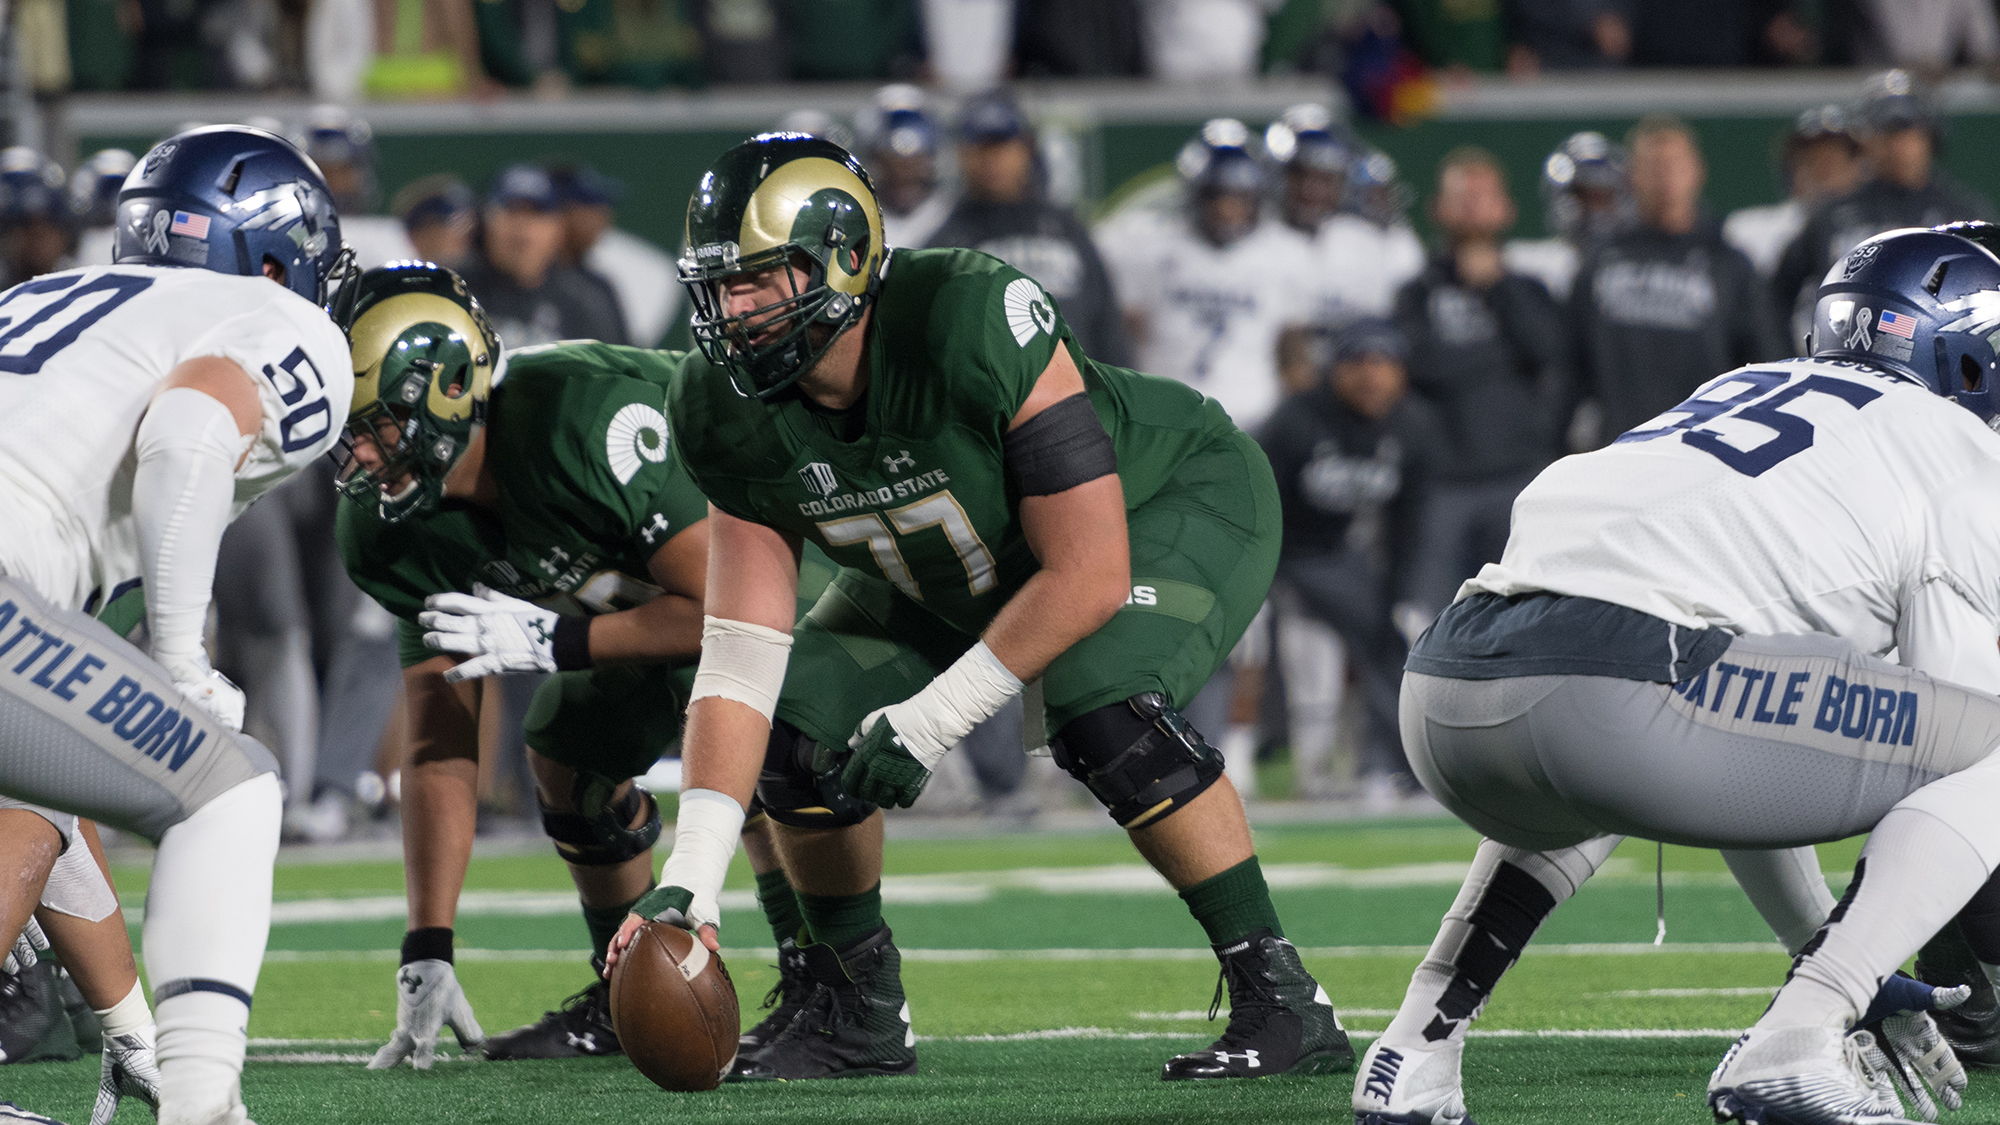 game notes colorado state to host air force in rivalry matchup colorado state university athletics